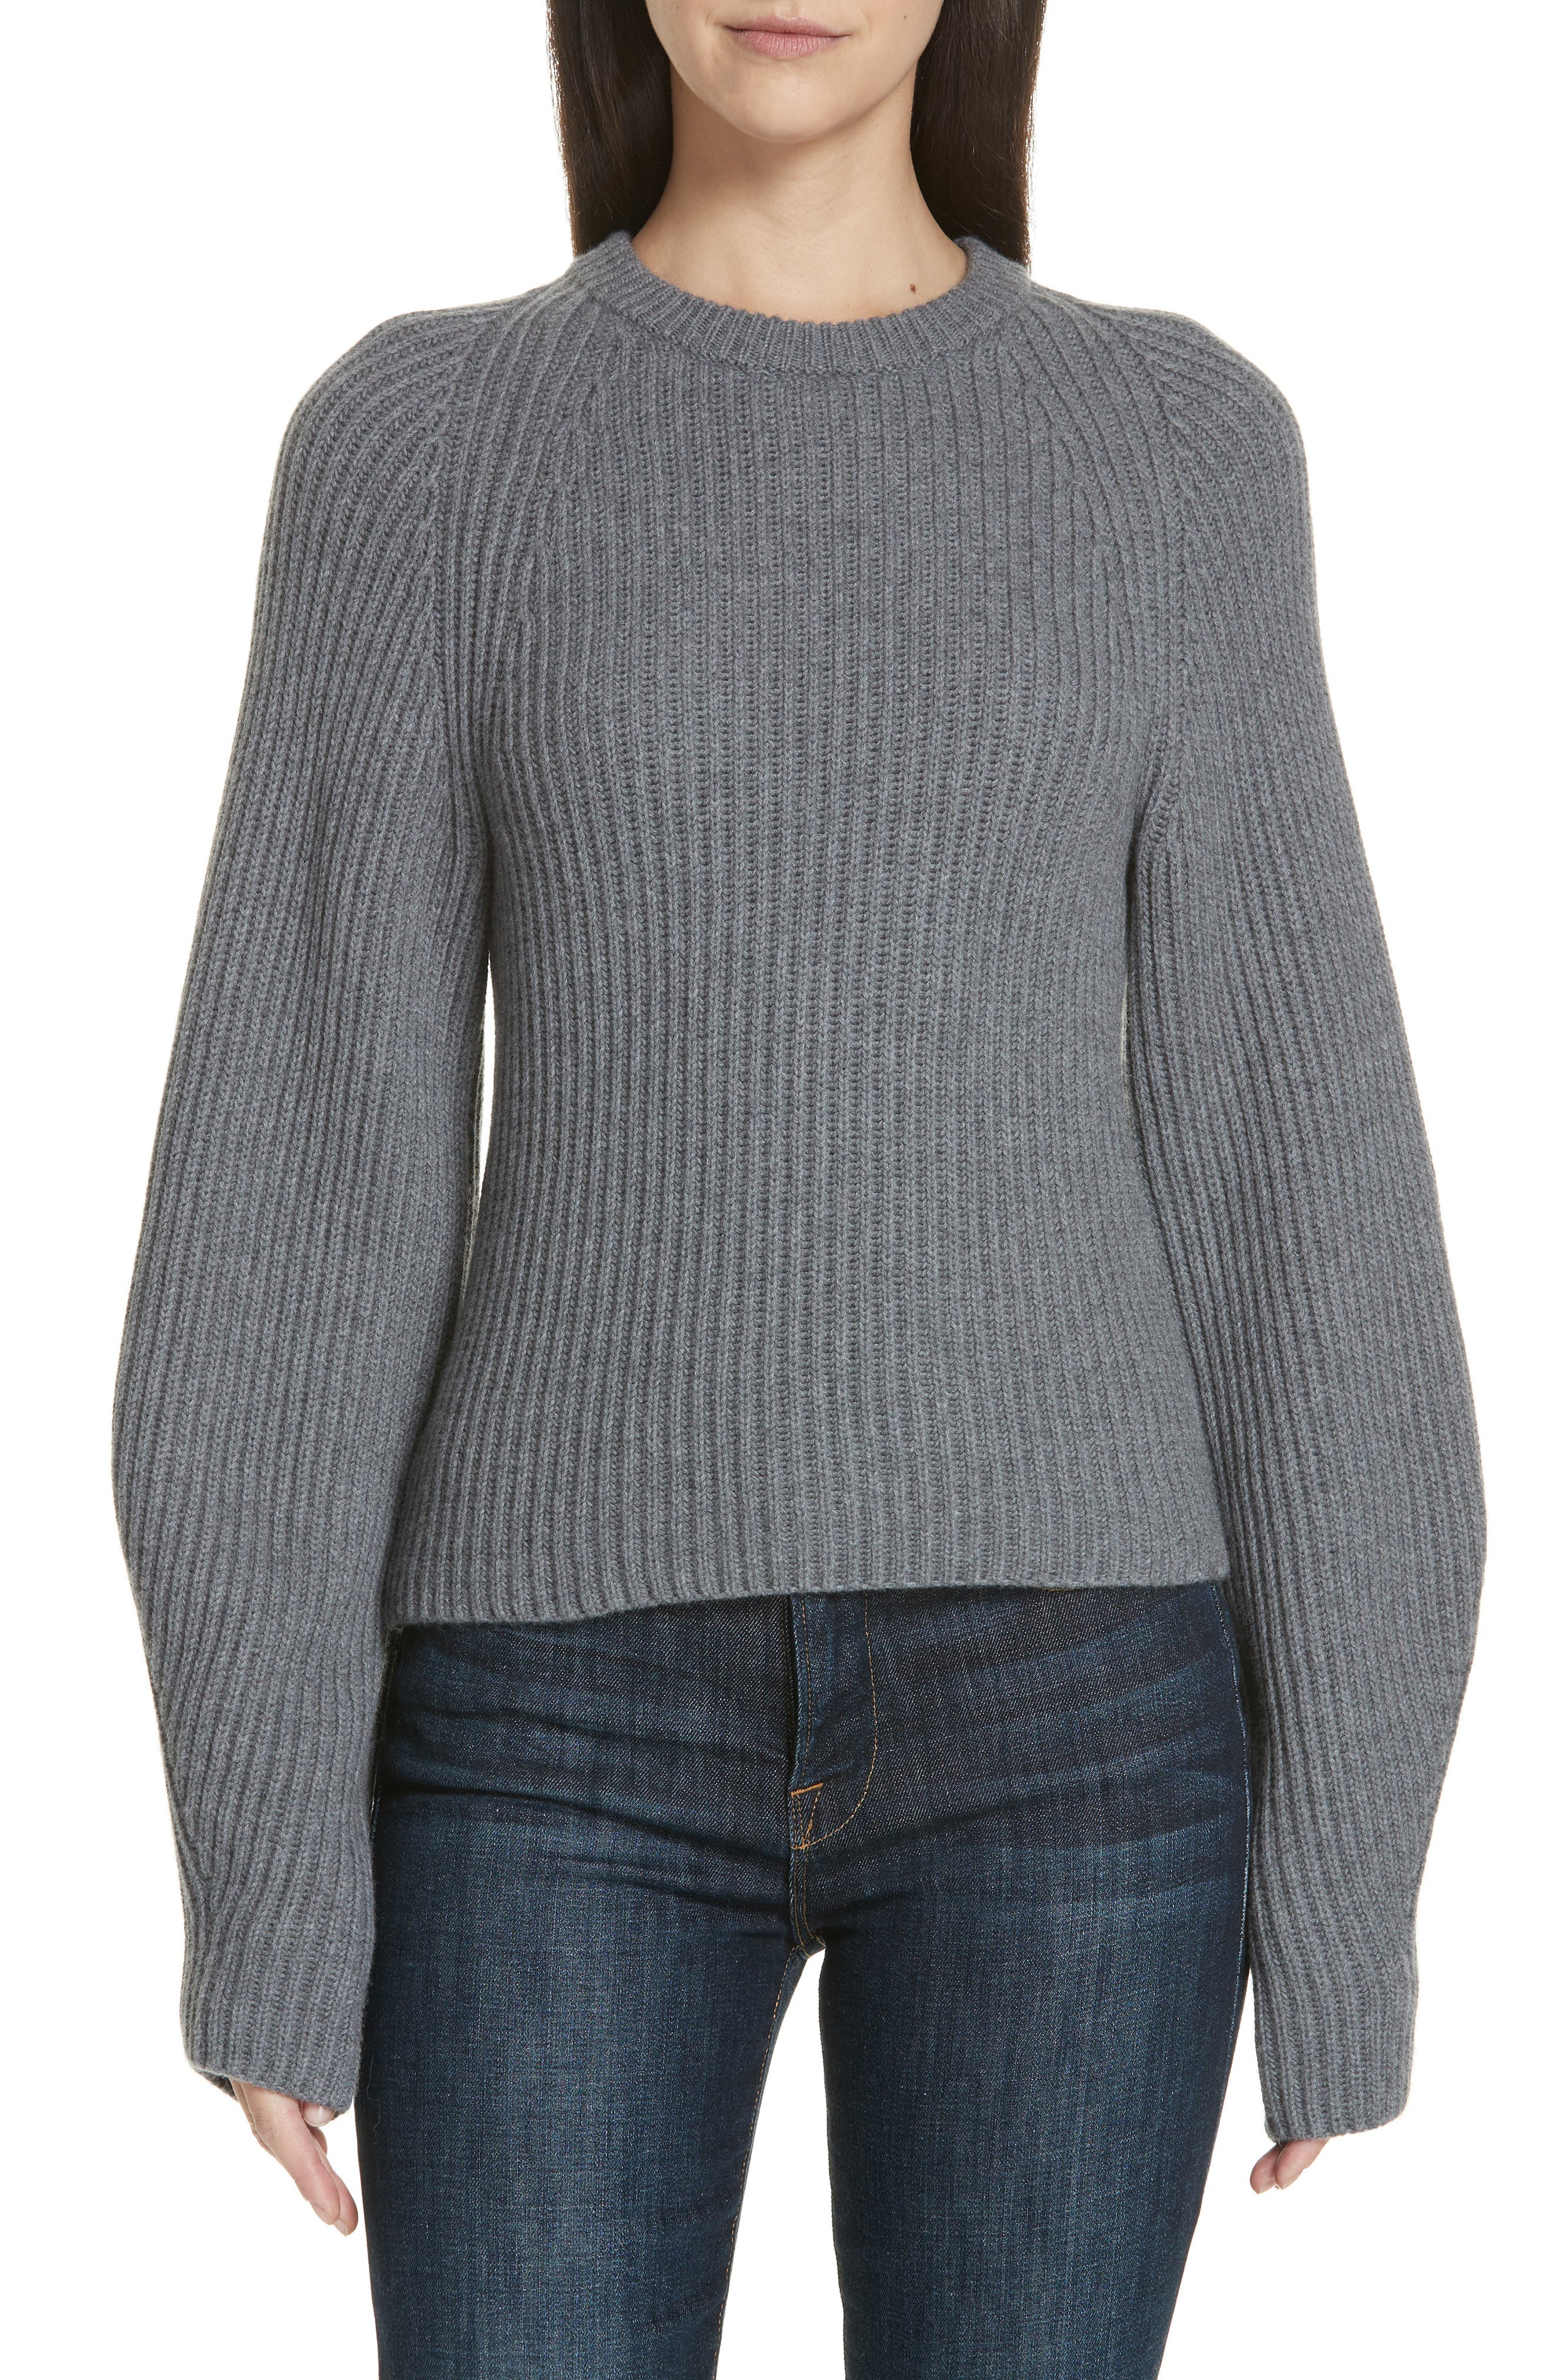 Sculpted Sleeve Shaker Stitch Merino Wool Sweater,                         Main,                         color, CHARCOAL